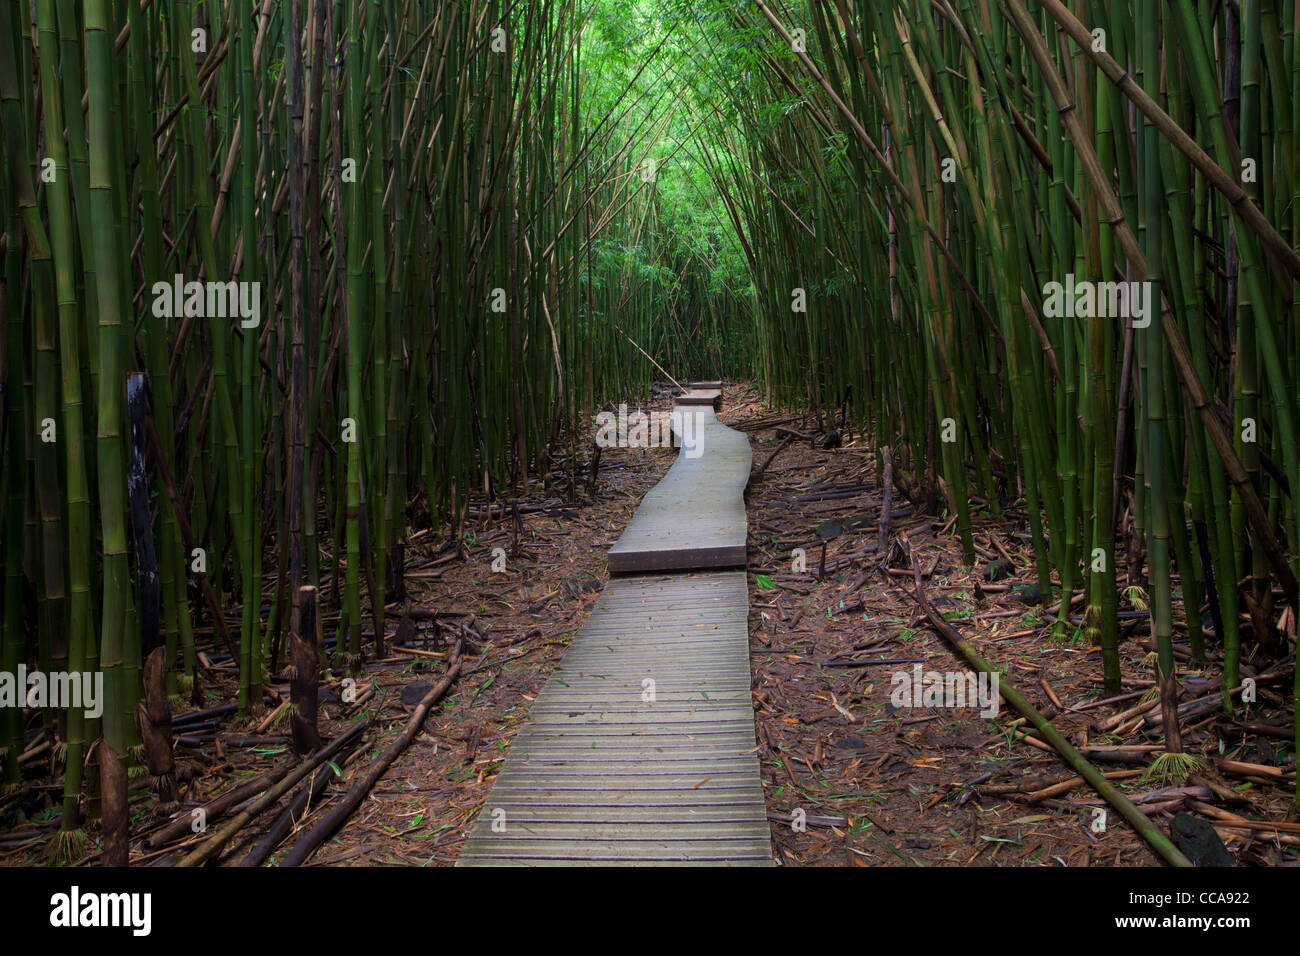 Temperate Bamboo Forest Photos Temperate Bamboo Forest Images Alamy